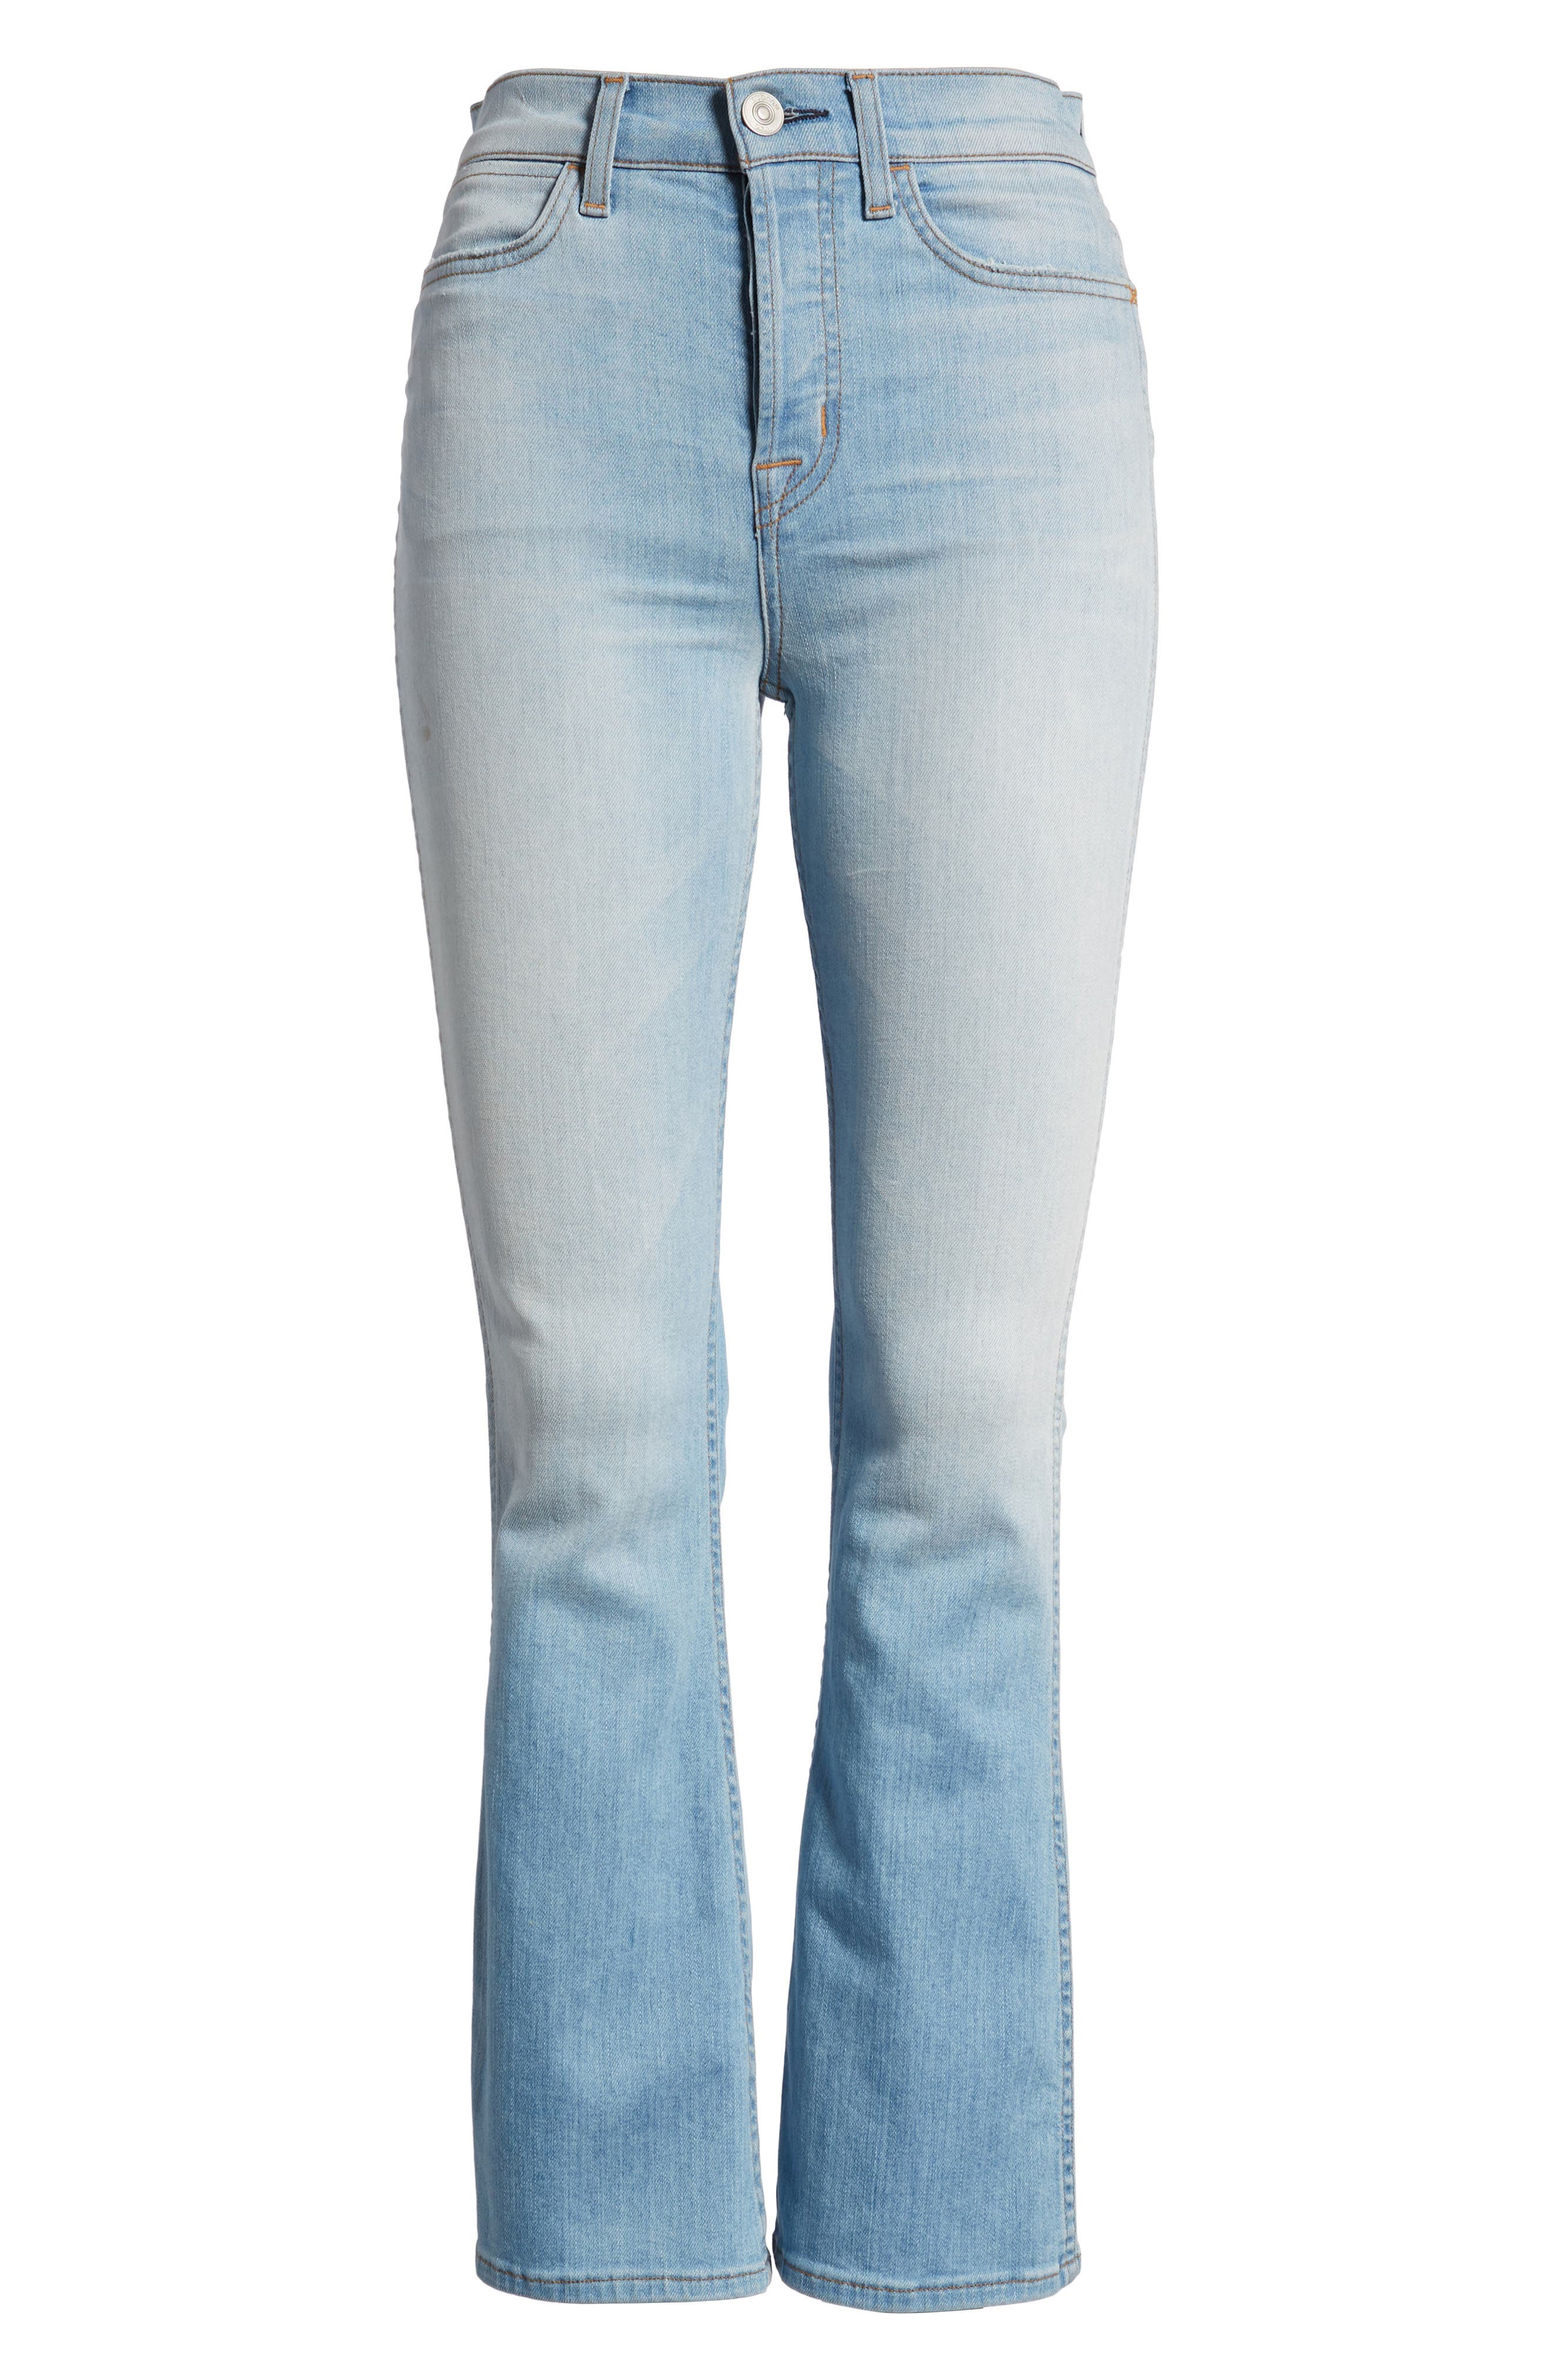 Holly High Waist Crop Flare Jeans,                             Alternate thumbnail 7, color,                             Closer